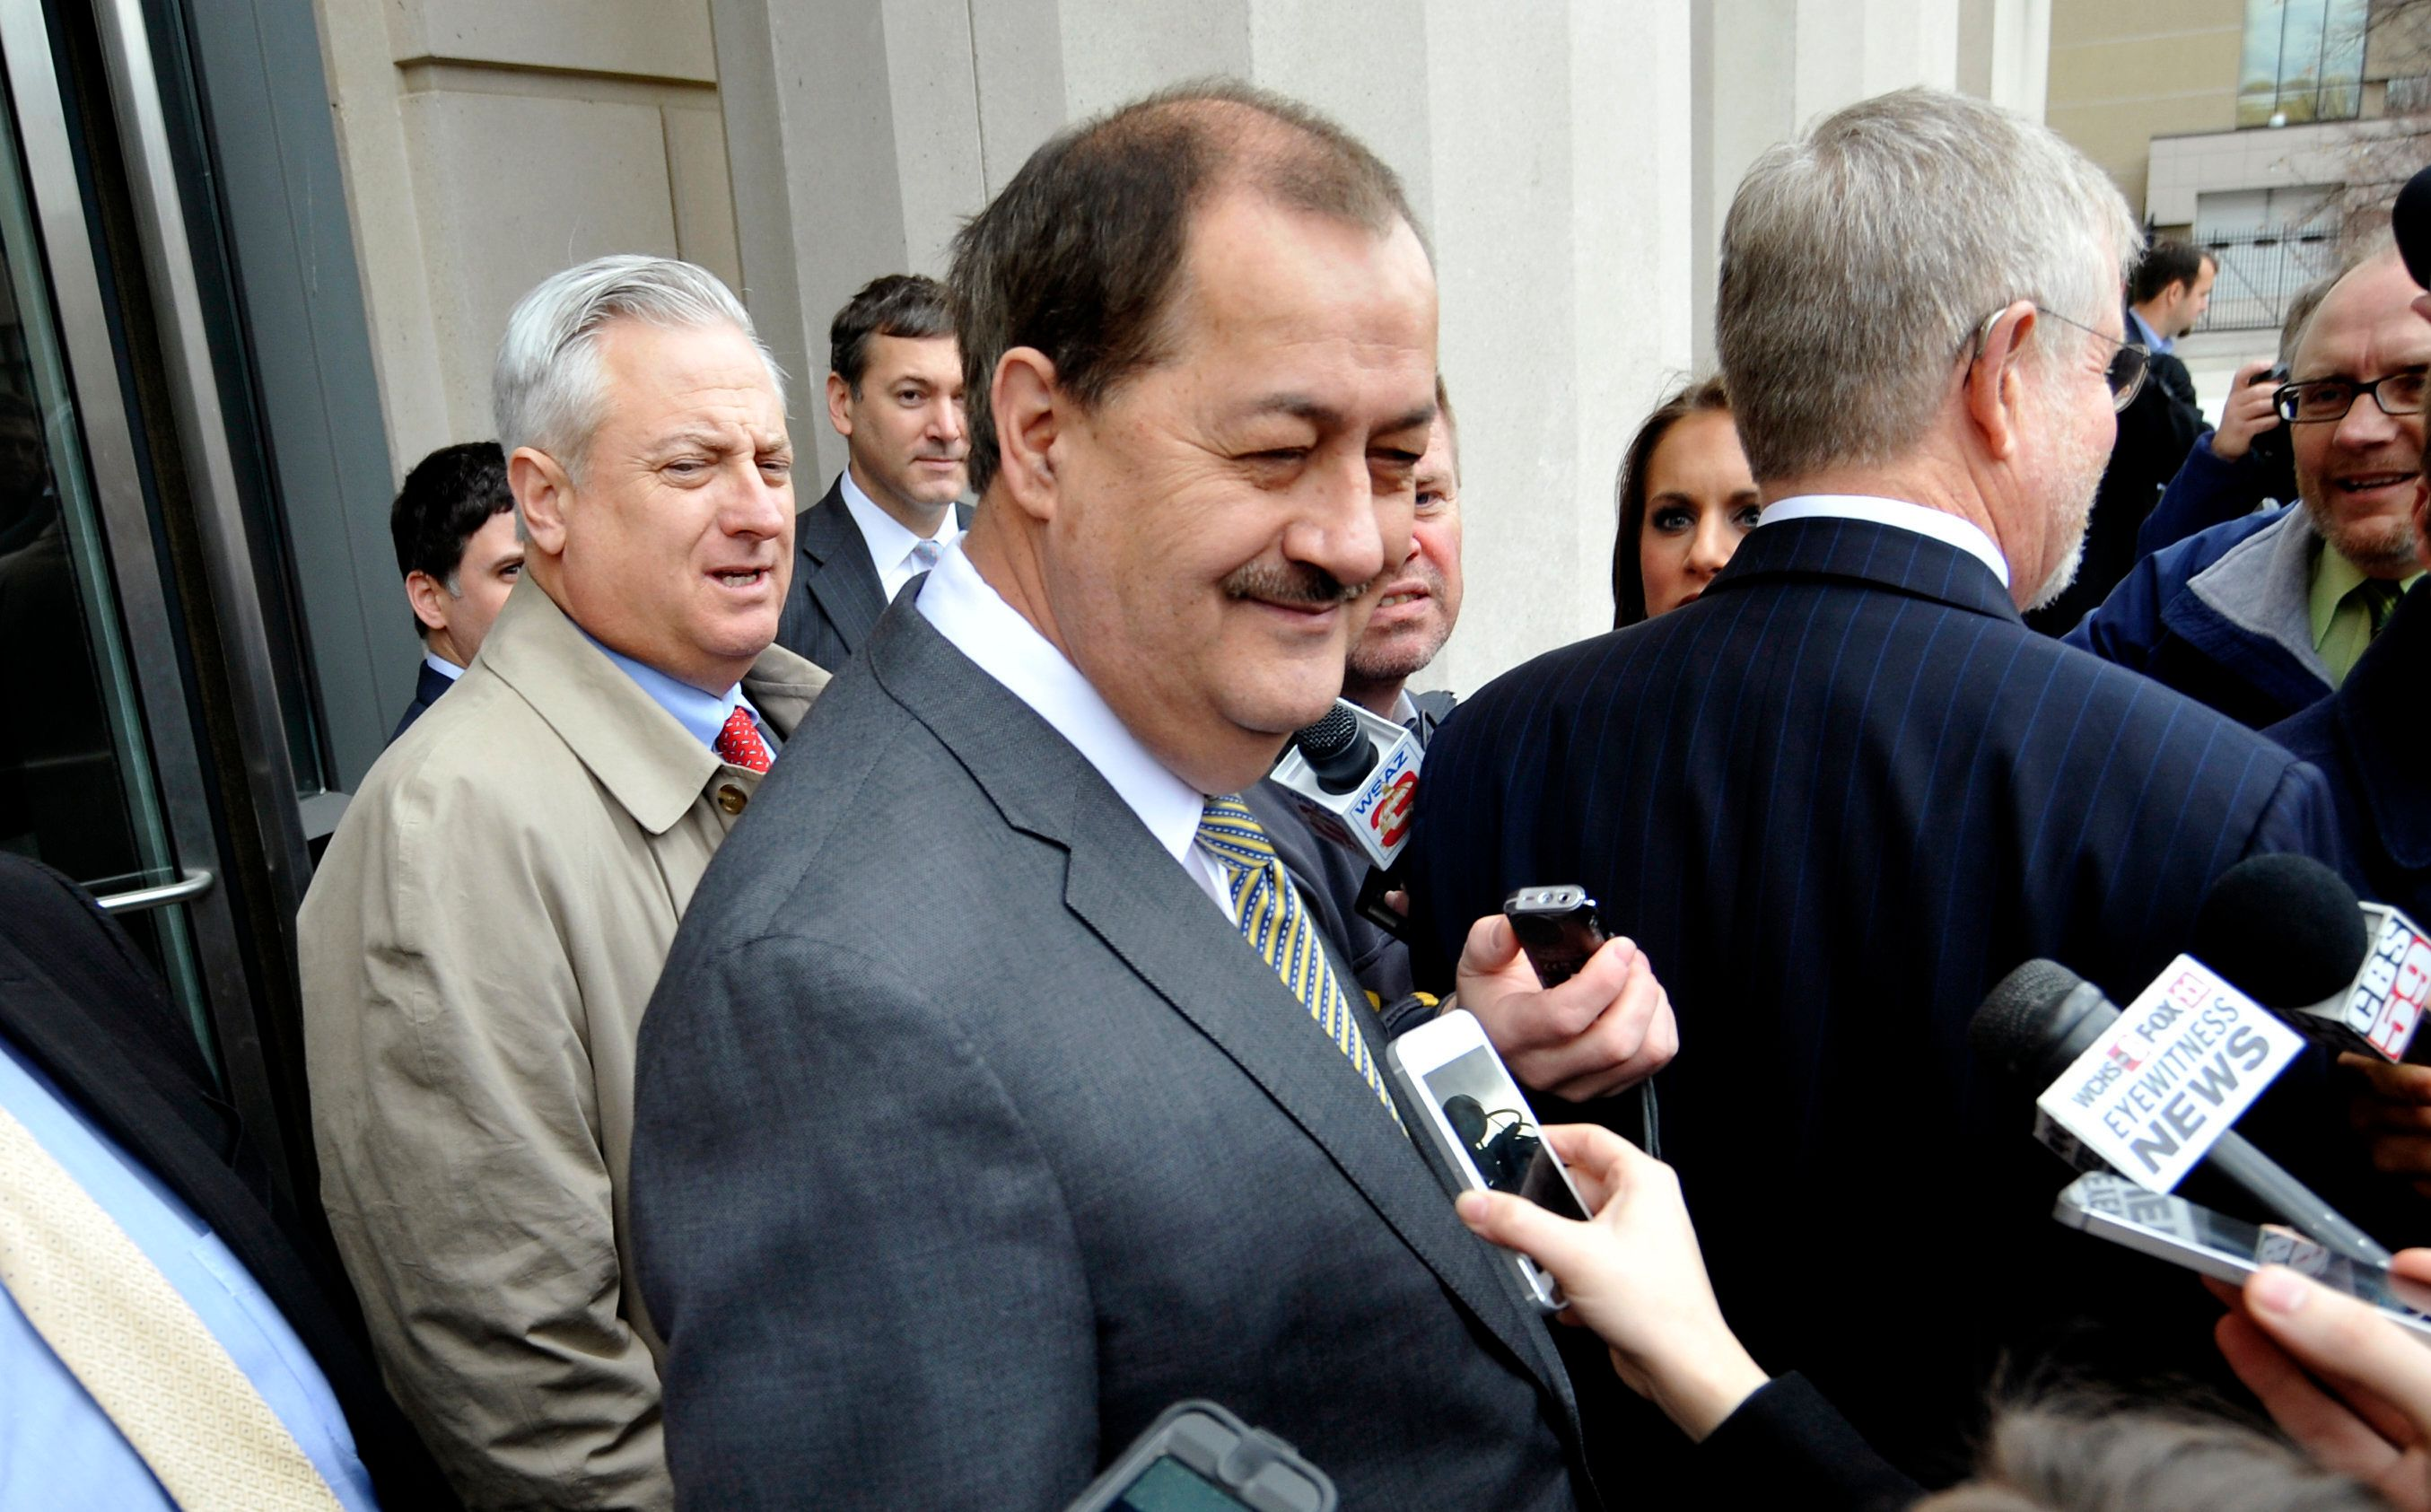 Former Massey Energy Chief Executive Don Blankenship (C) smiles outside the Robert C. Byrd U.S. Courthouse just moments after the verdict was handed down to him in Charleston, West Virginia December 3, 2015. Blankenship was found guilty in federal court on Thursday of conspiring to violate safety standards at the Upper Big Branch mine, the site of a 2010 blast that killed 29 people.    REUTERS/Chris Tilley